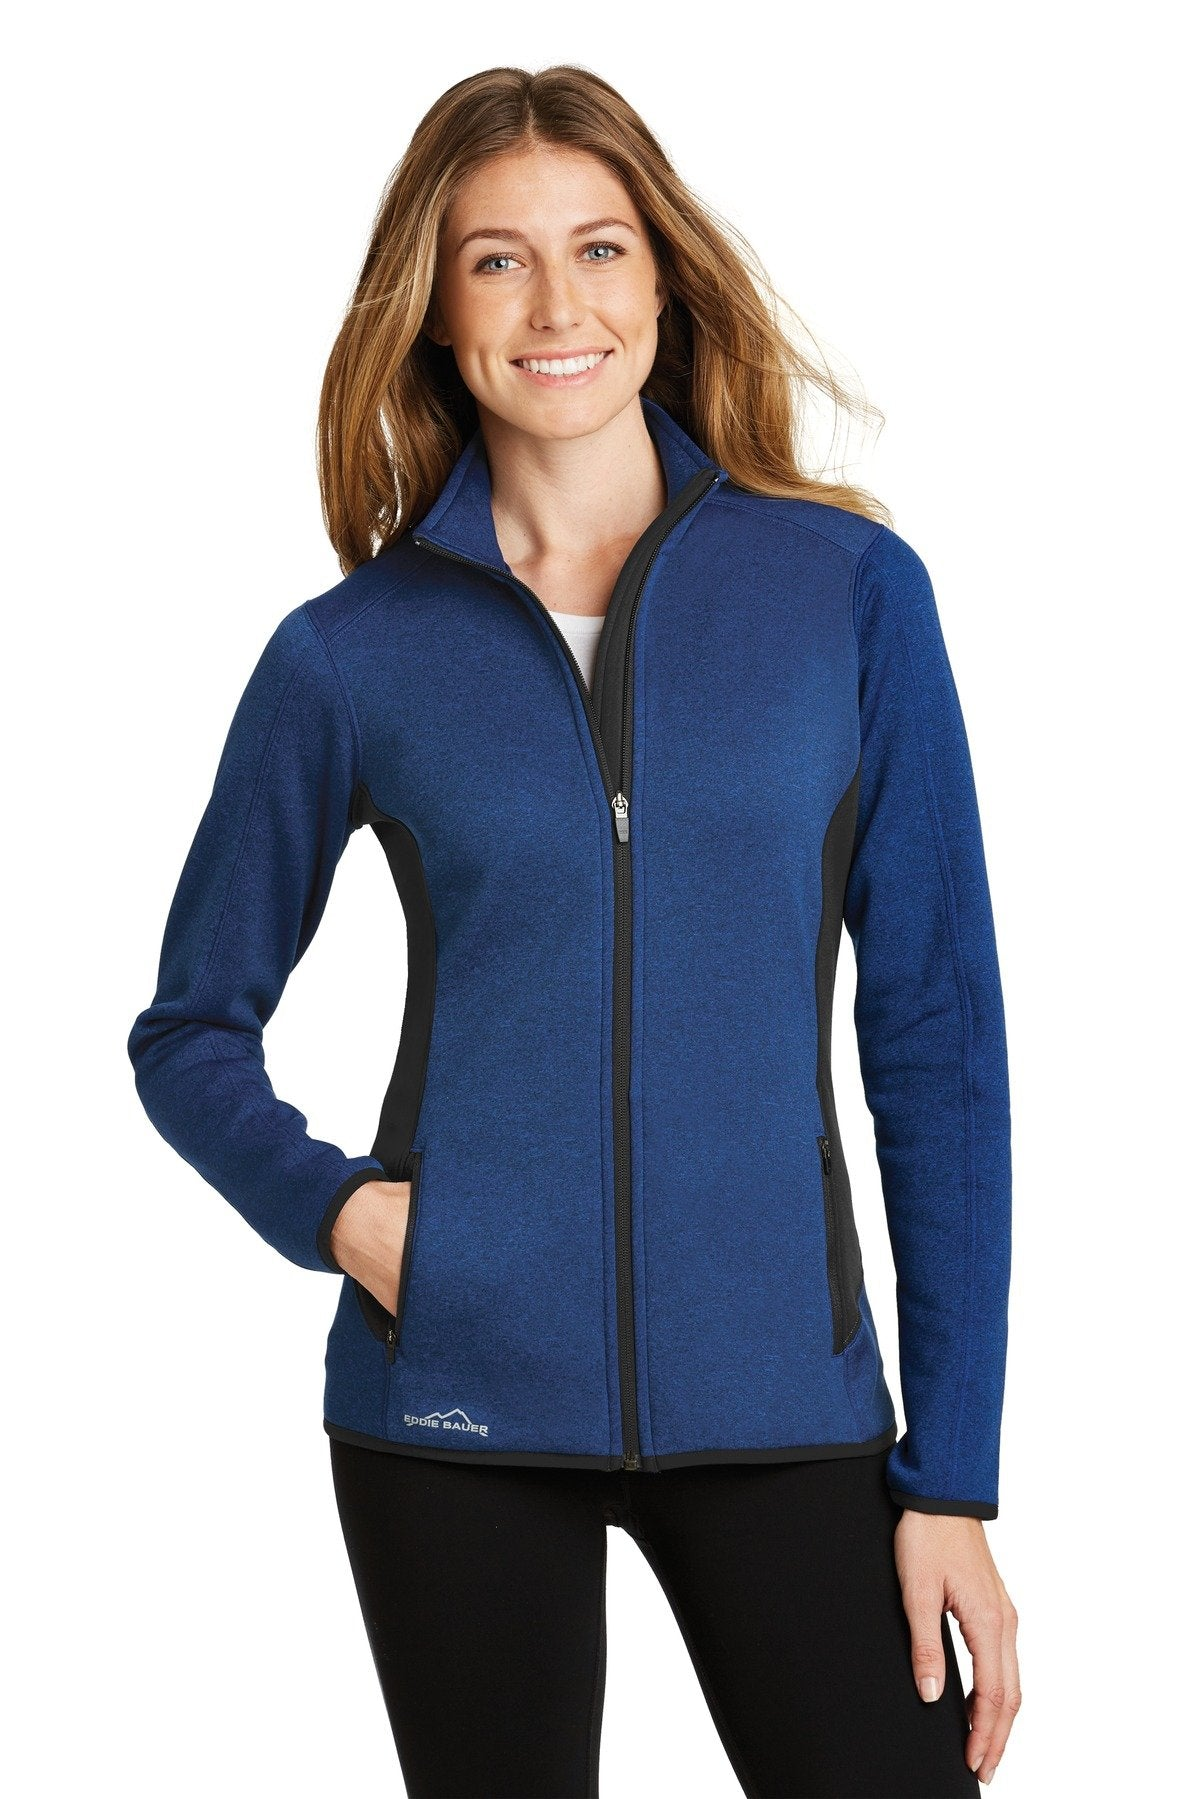 Blue Heather - Eddie Bauer EB239